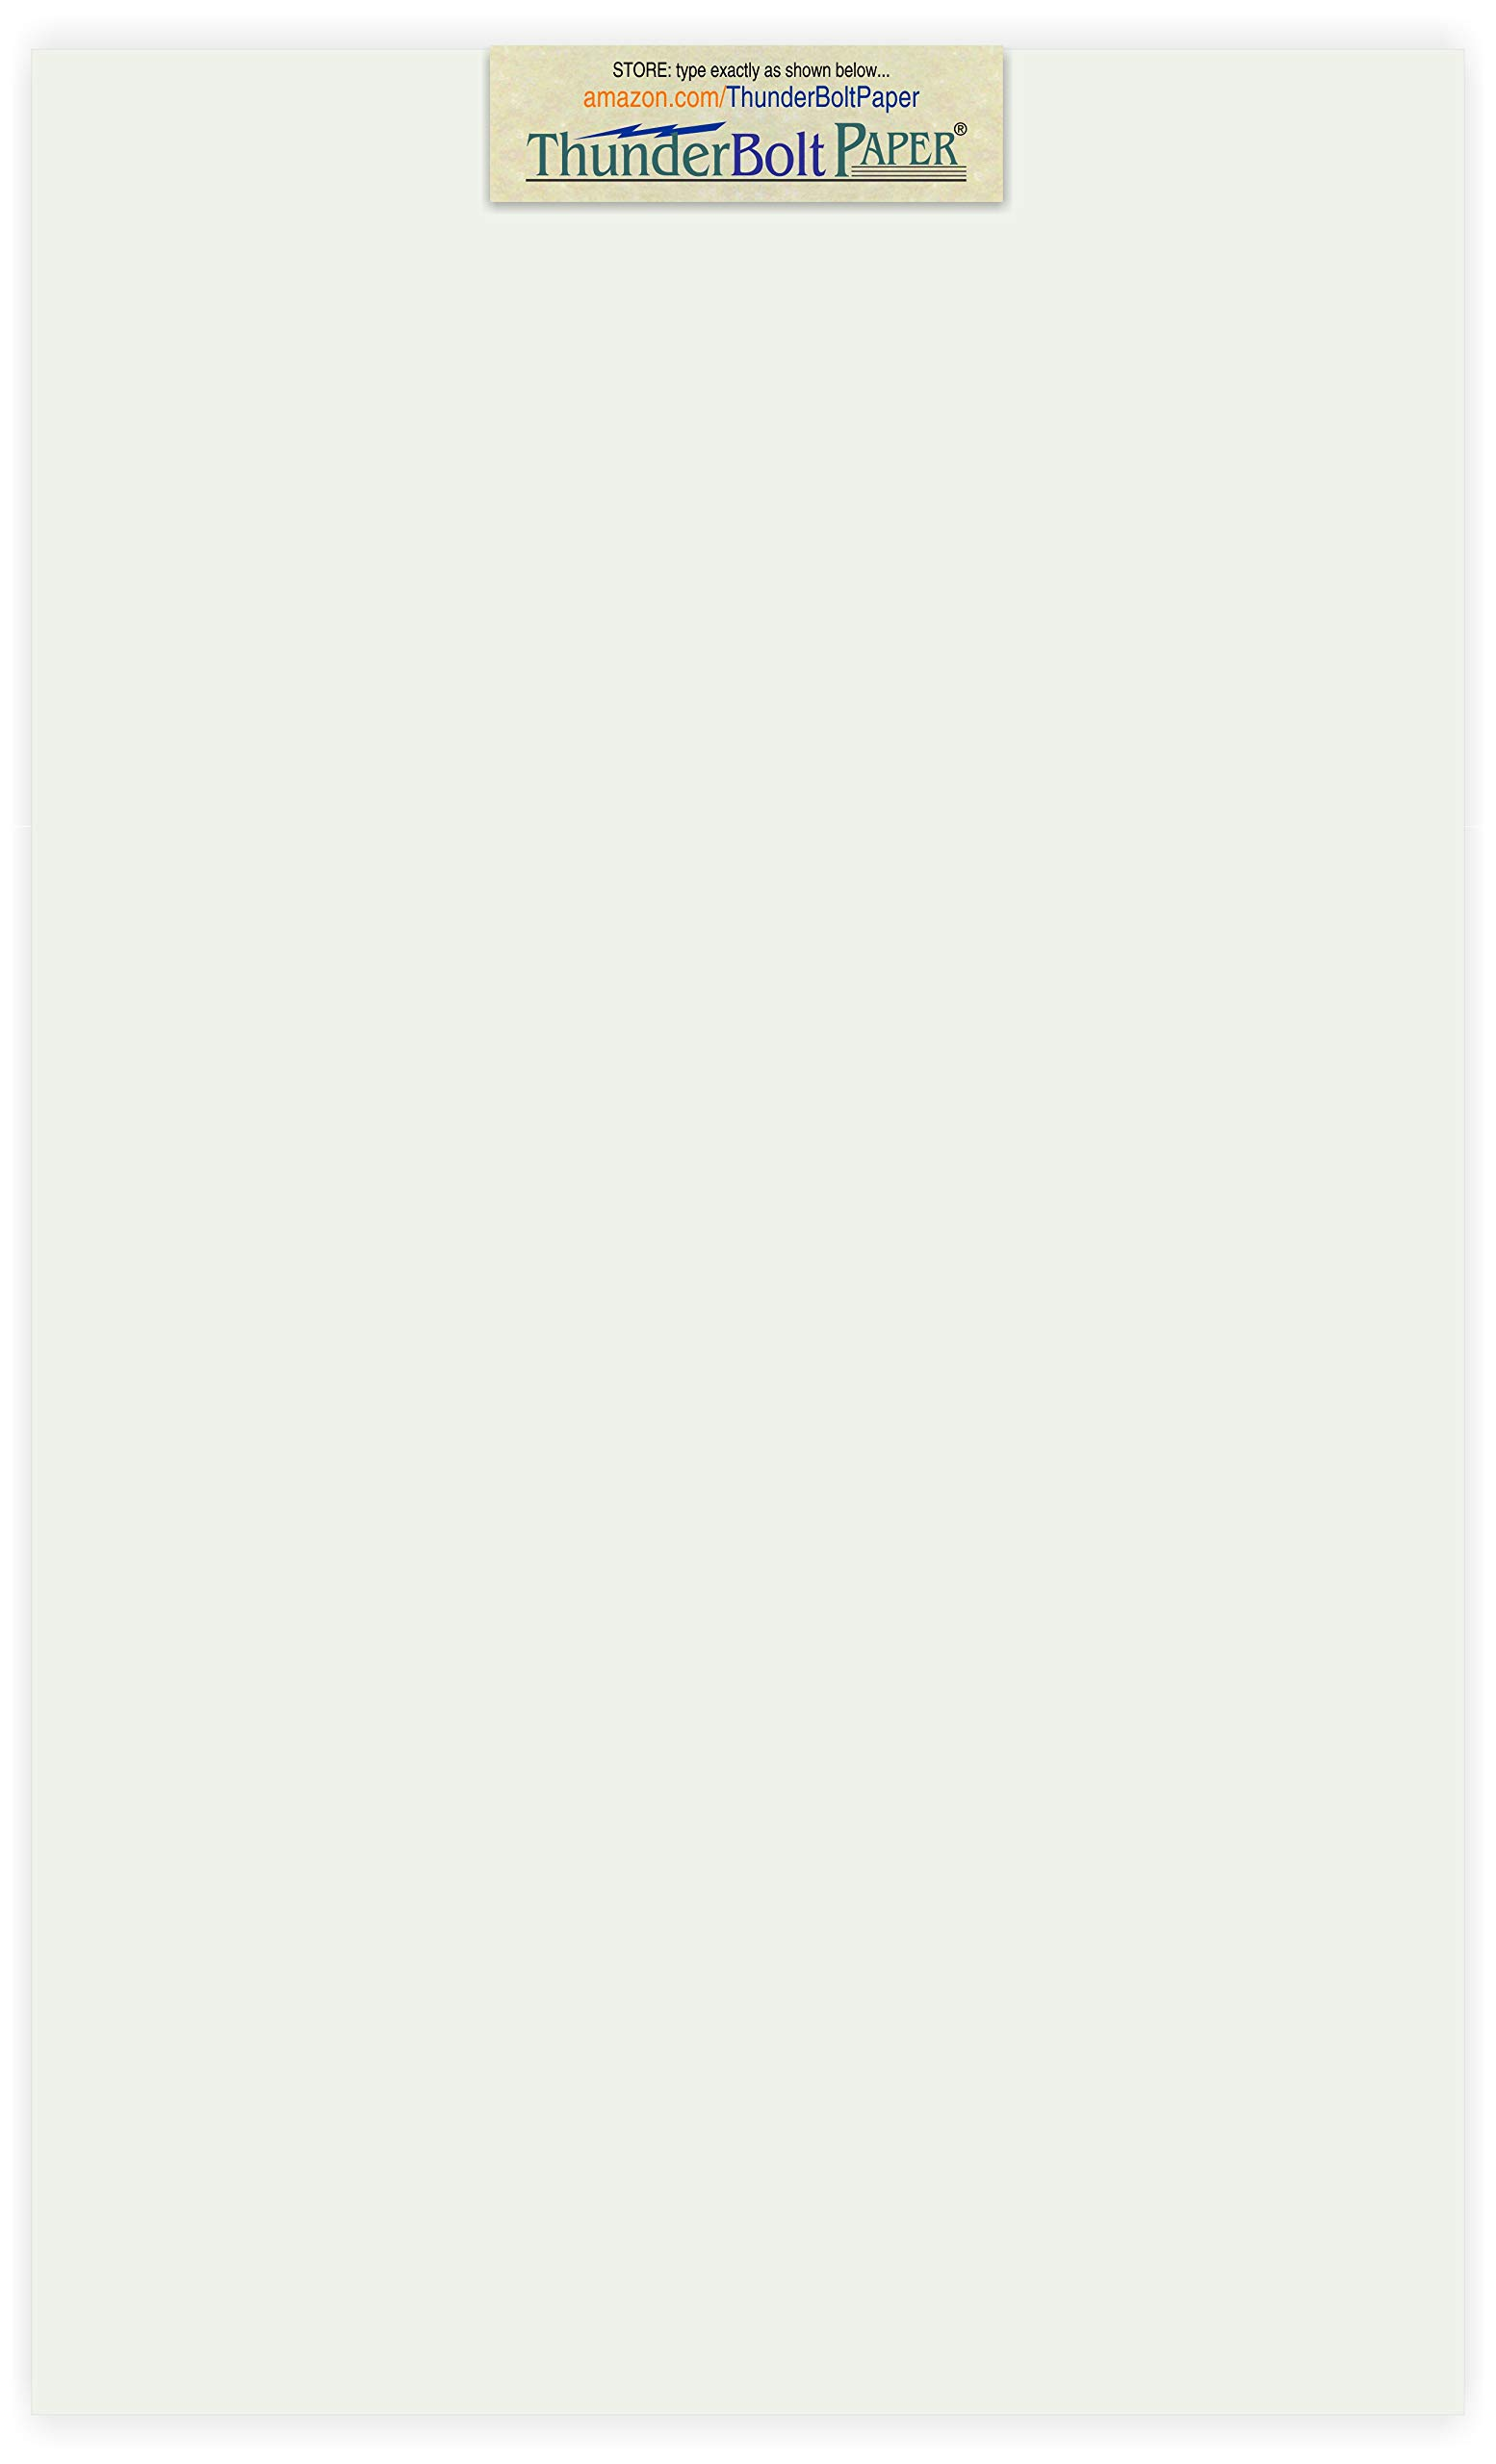 50 Off-White Translucent 17# Thin Sheets - 8.5 X 14 Inches Legal|Menu Size - 17 lb/pound Light Weight Fine Quality Paper - Tracing, Fun or Formal Use - Light Gray, Not a Clear Transparent